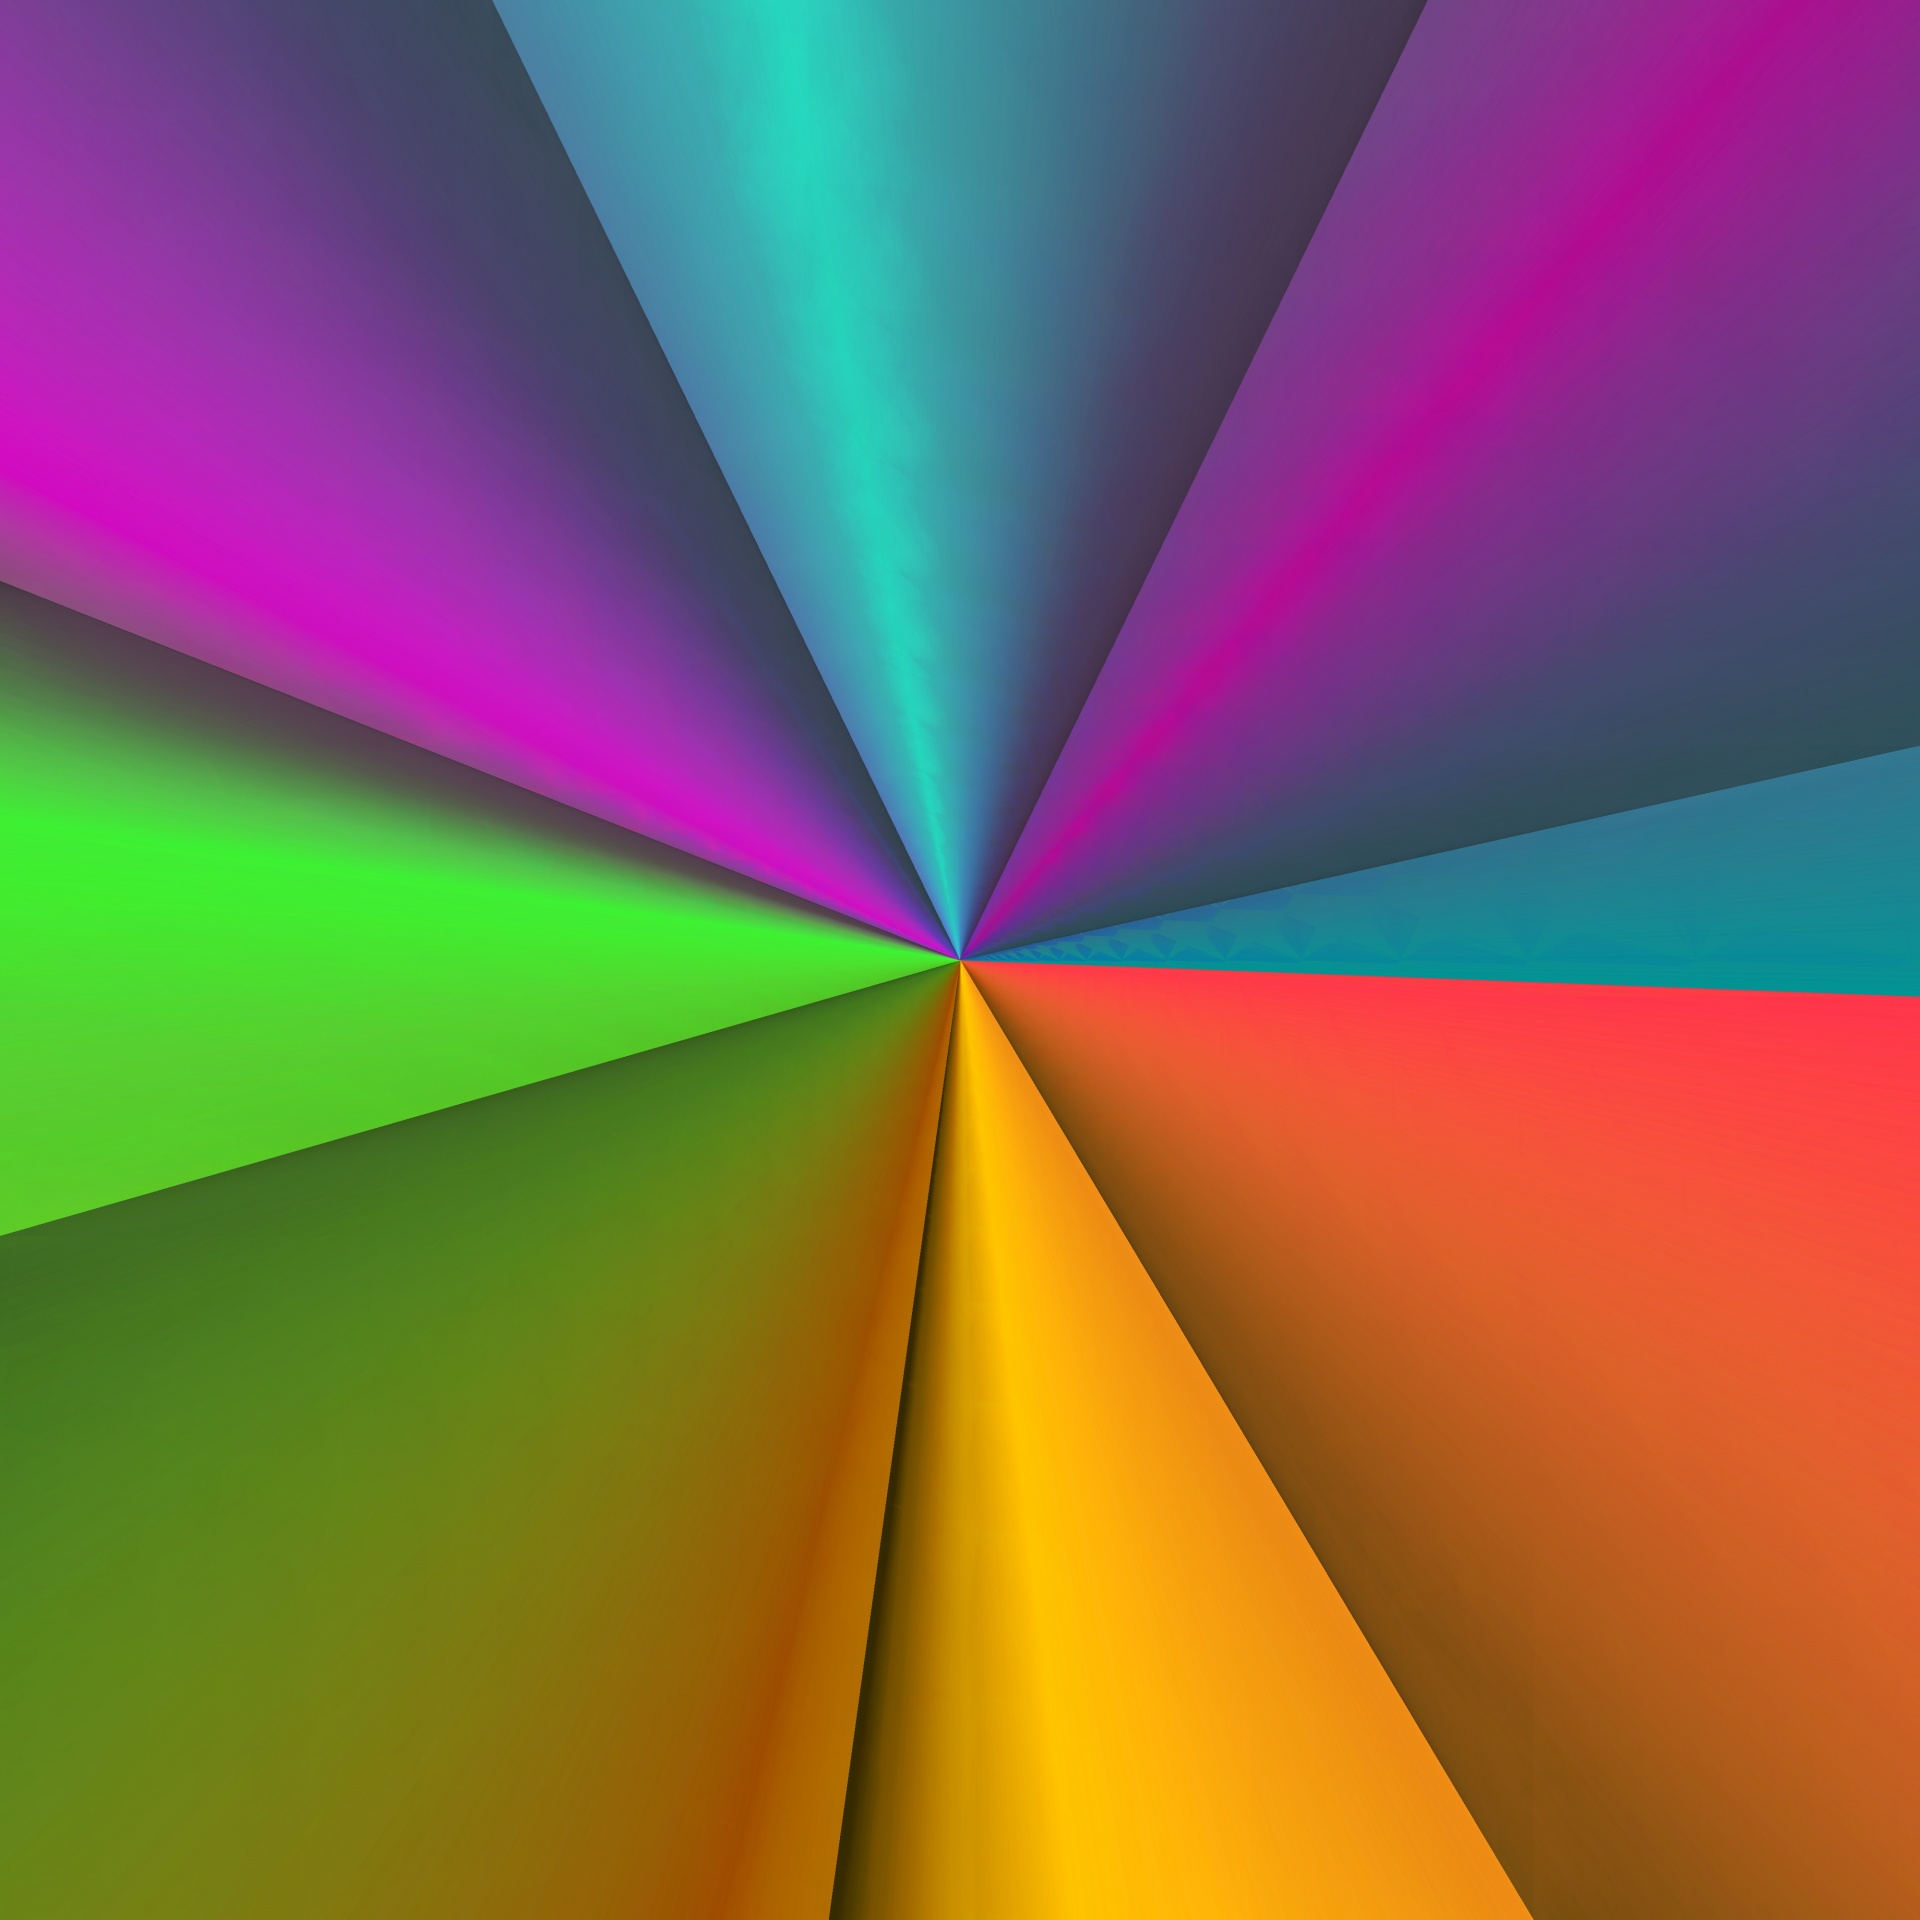 Background Backdrop Color Sun Blinds Free Image From Needpix Com